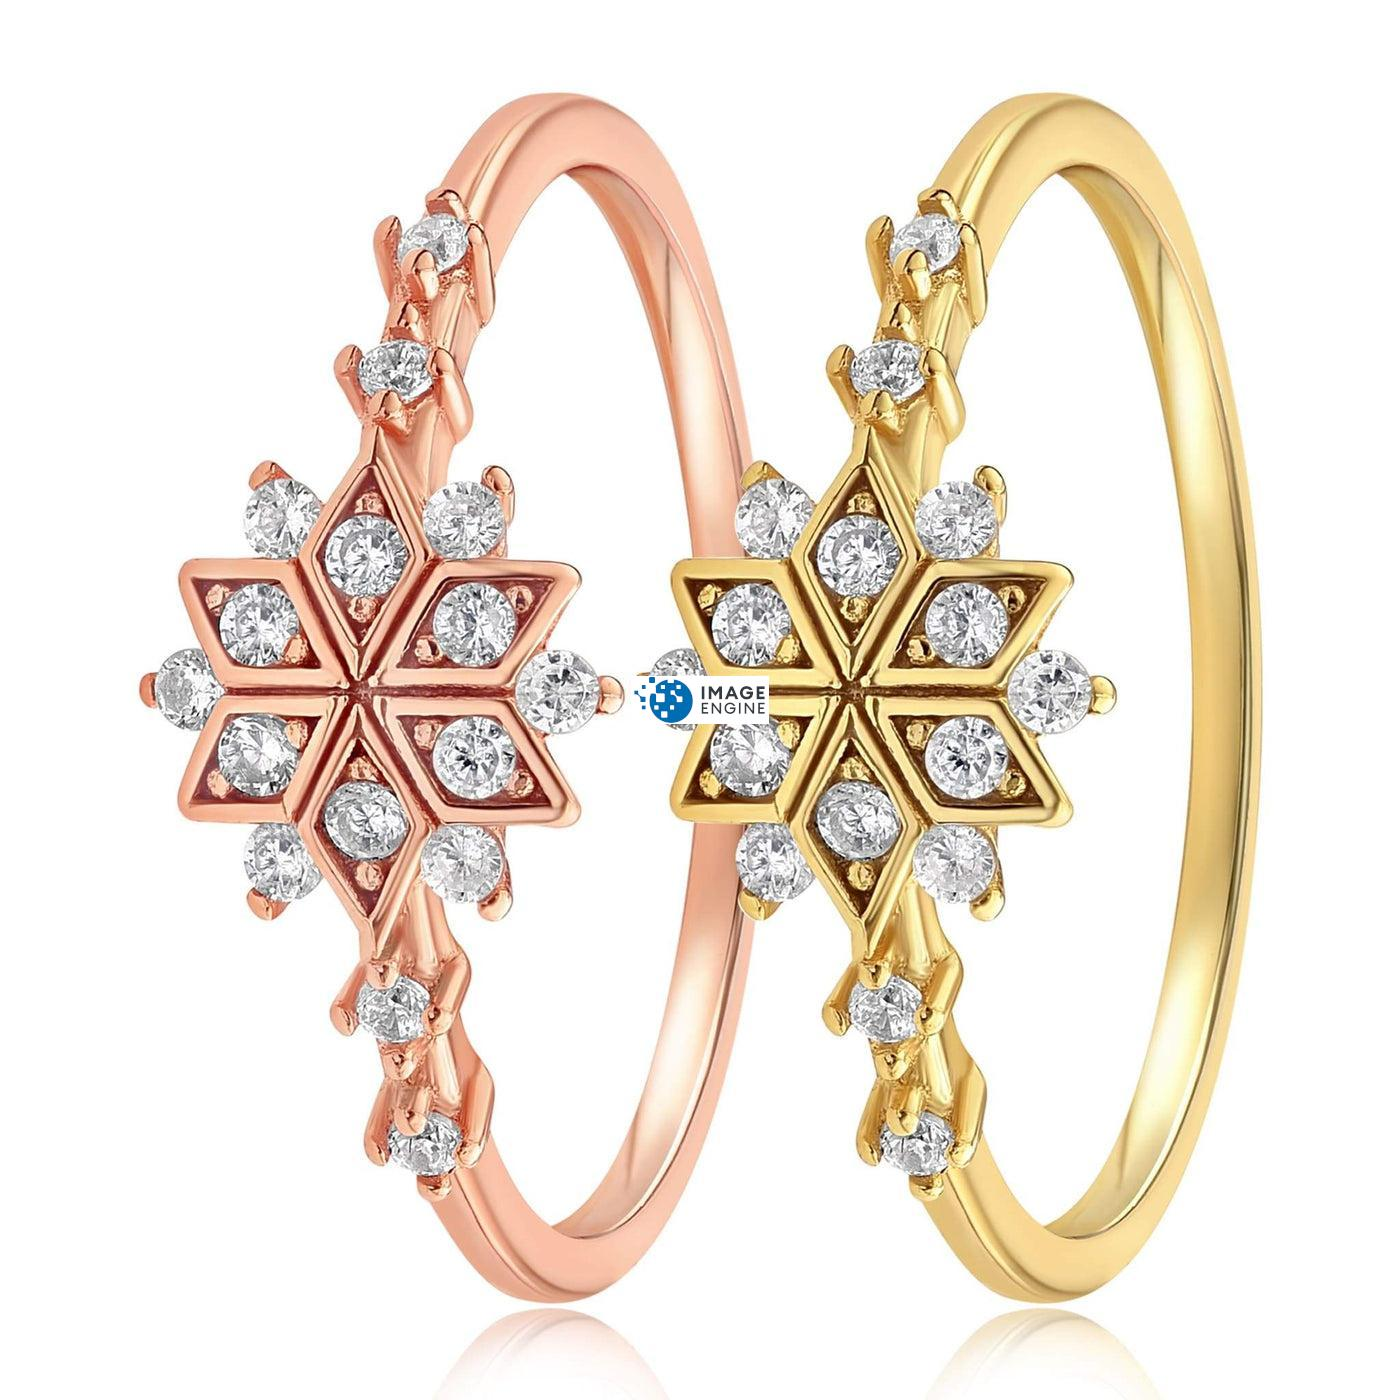 Sophia Snowflake Ring - Side by Side - 18K Yellow Gold Vermeil and 18K Rose Gold Vermeil